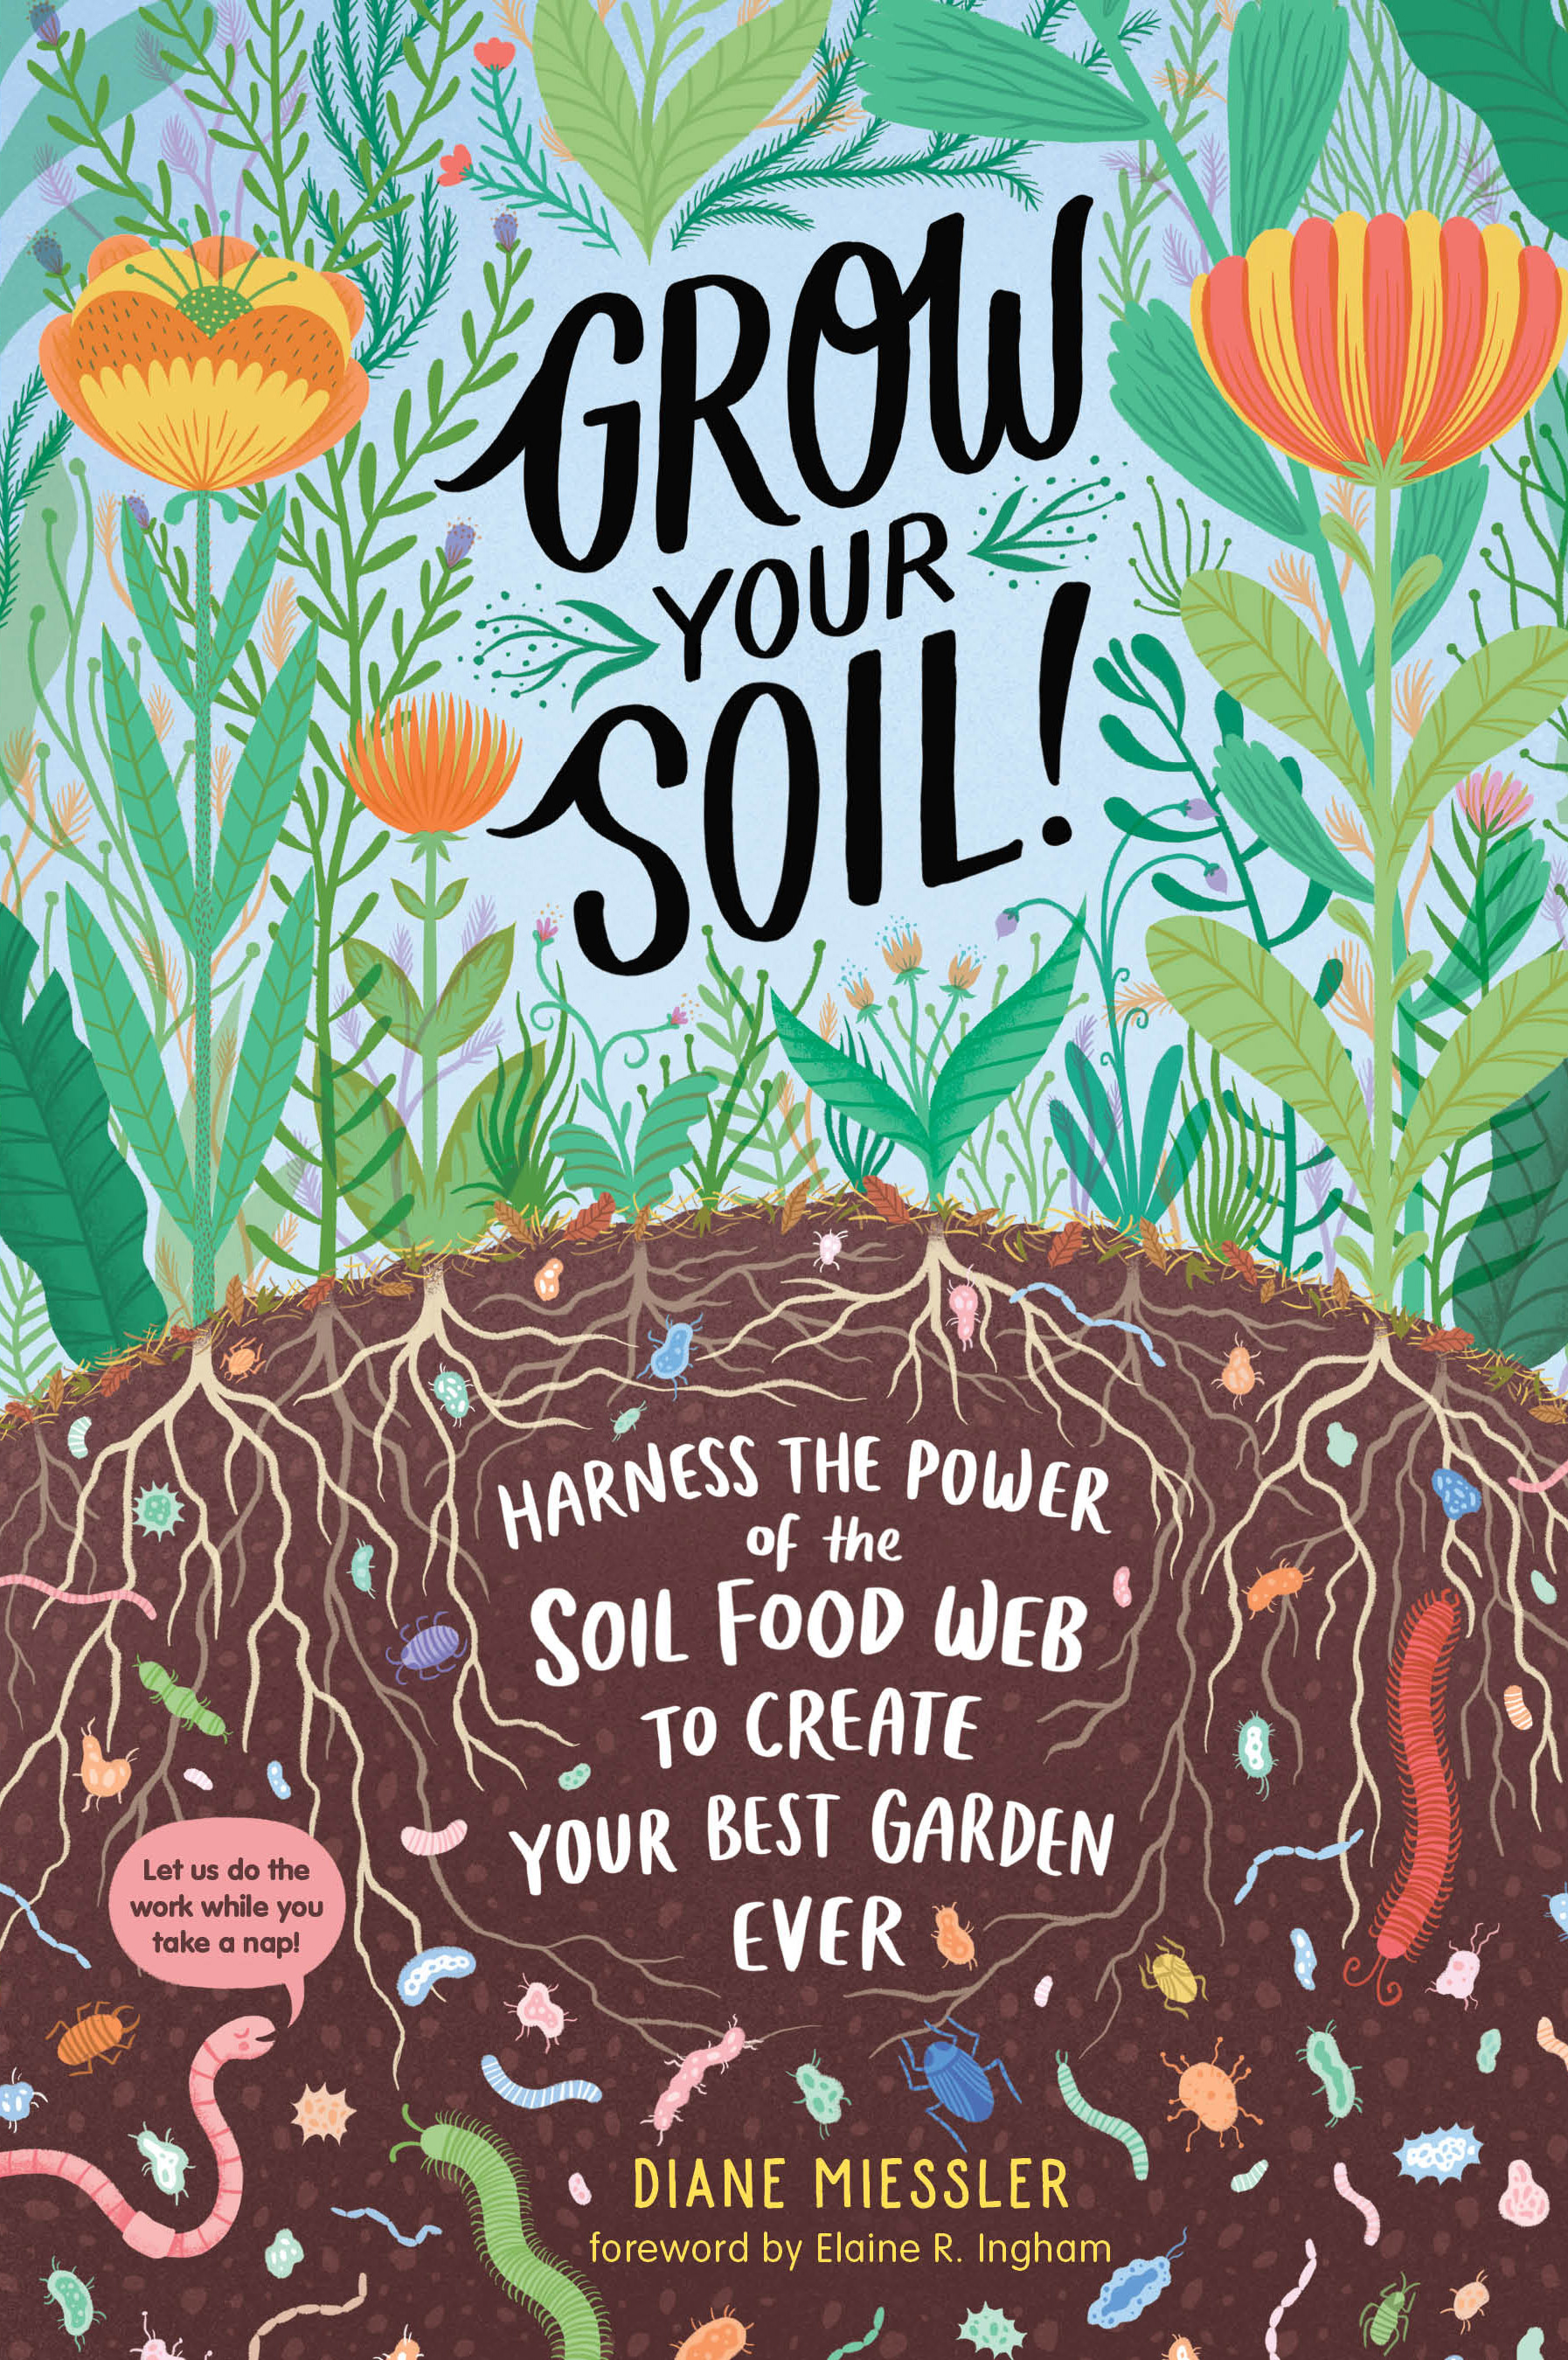 Grow Your Soil! Harness the Power of the Soil Food Web to Create Your Best Garden Ever - Diane Miessler